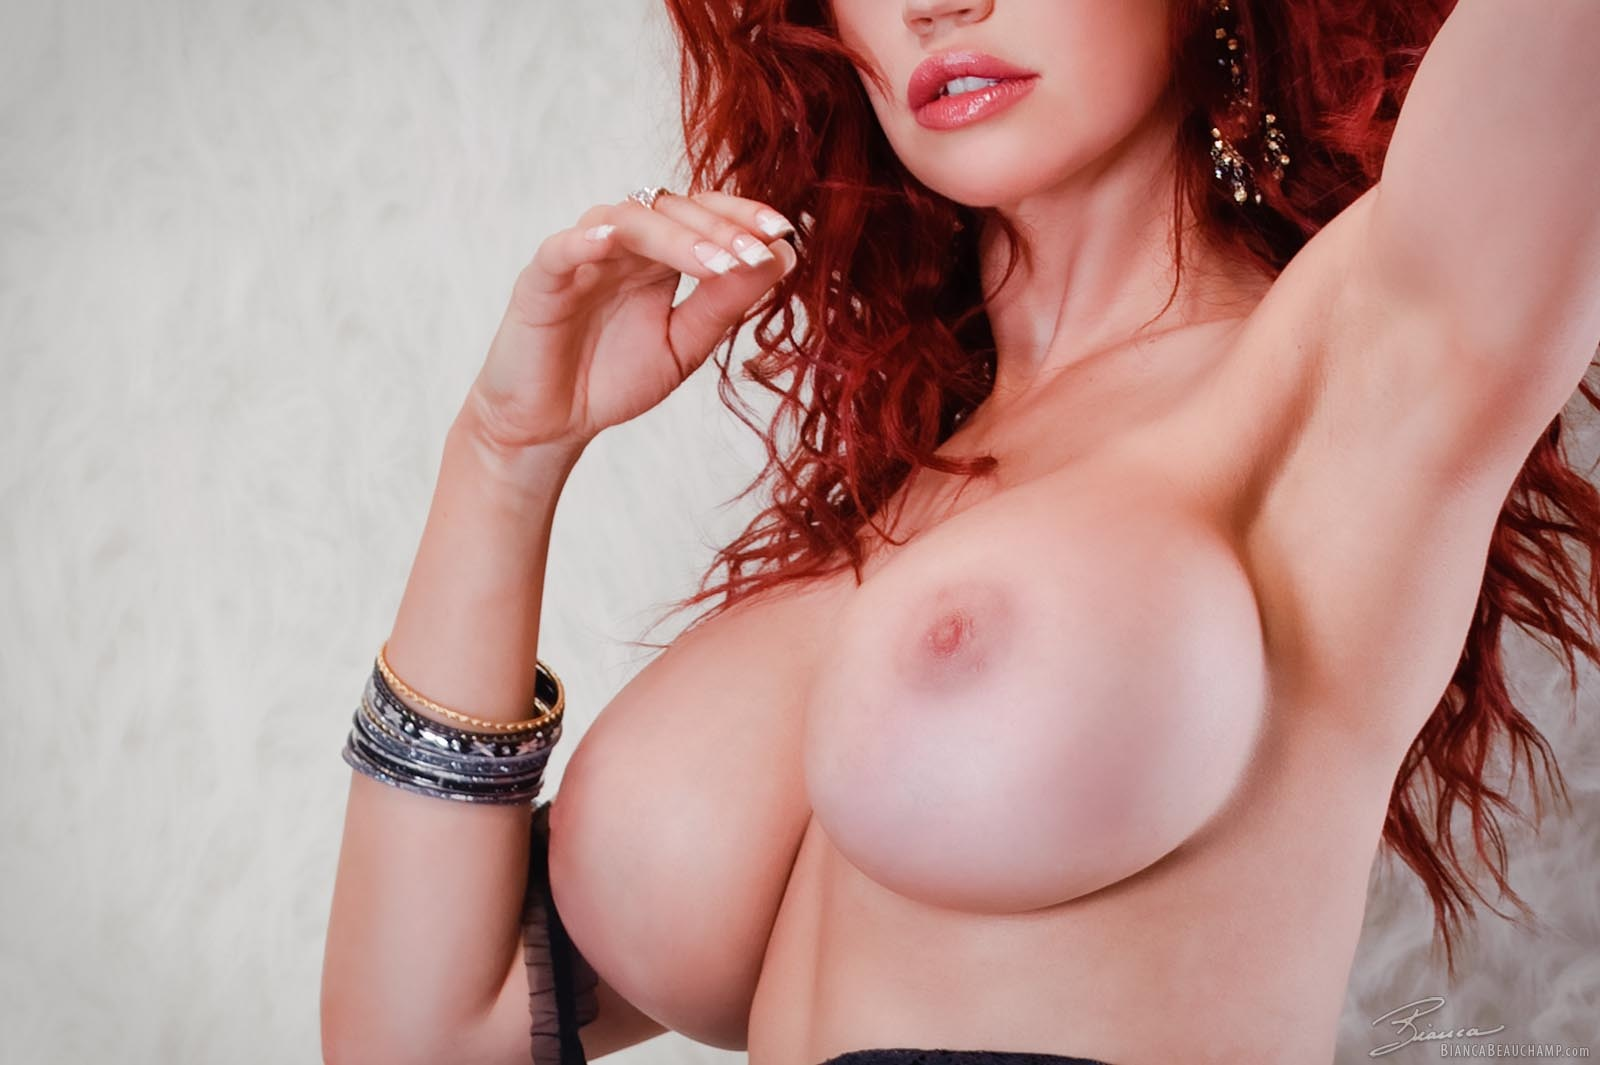 Wallpaper bianca beauchamp, big tits, sexy, boobs, redhead, nipples,  hooters, hot, sexy, erotic, round ass, round boobs, tight, beauty,  lingerie, ...